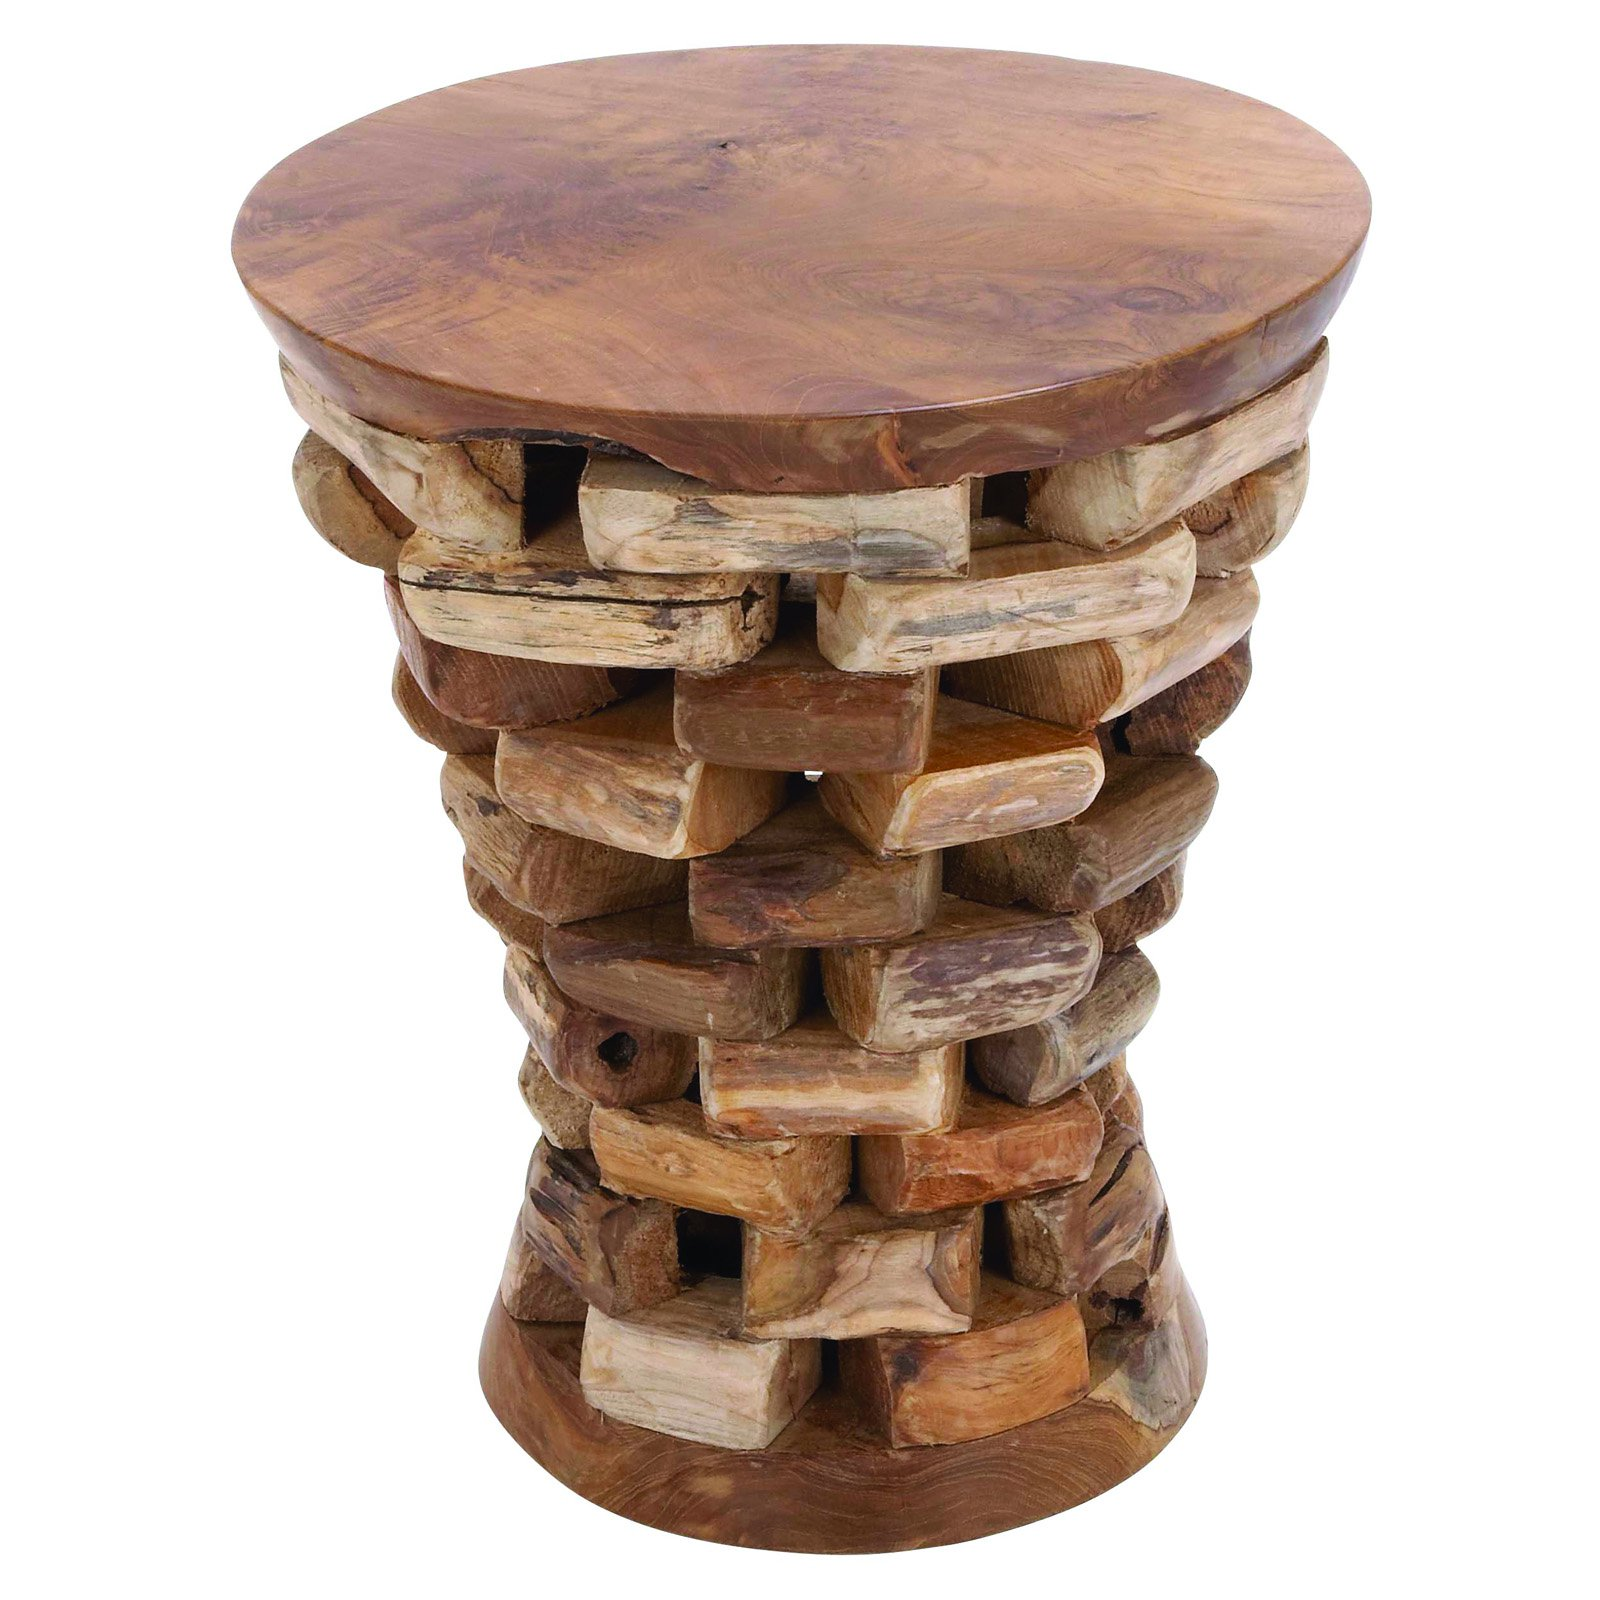 raw wood table probably super awesome drum end tables natural top benzara round shaped teak wooden accent sears living room furniture vintage lane rustic dining chairs oval patio